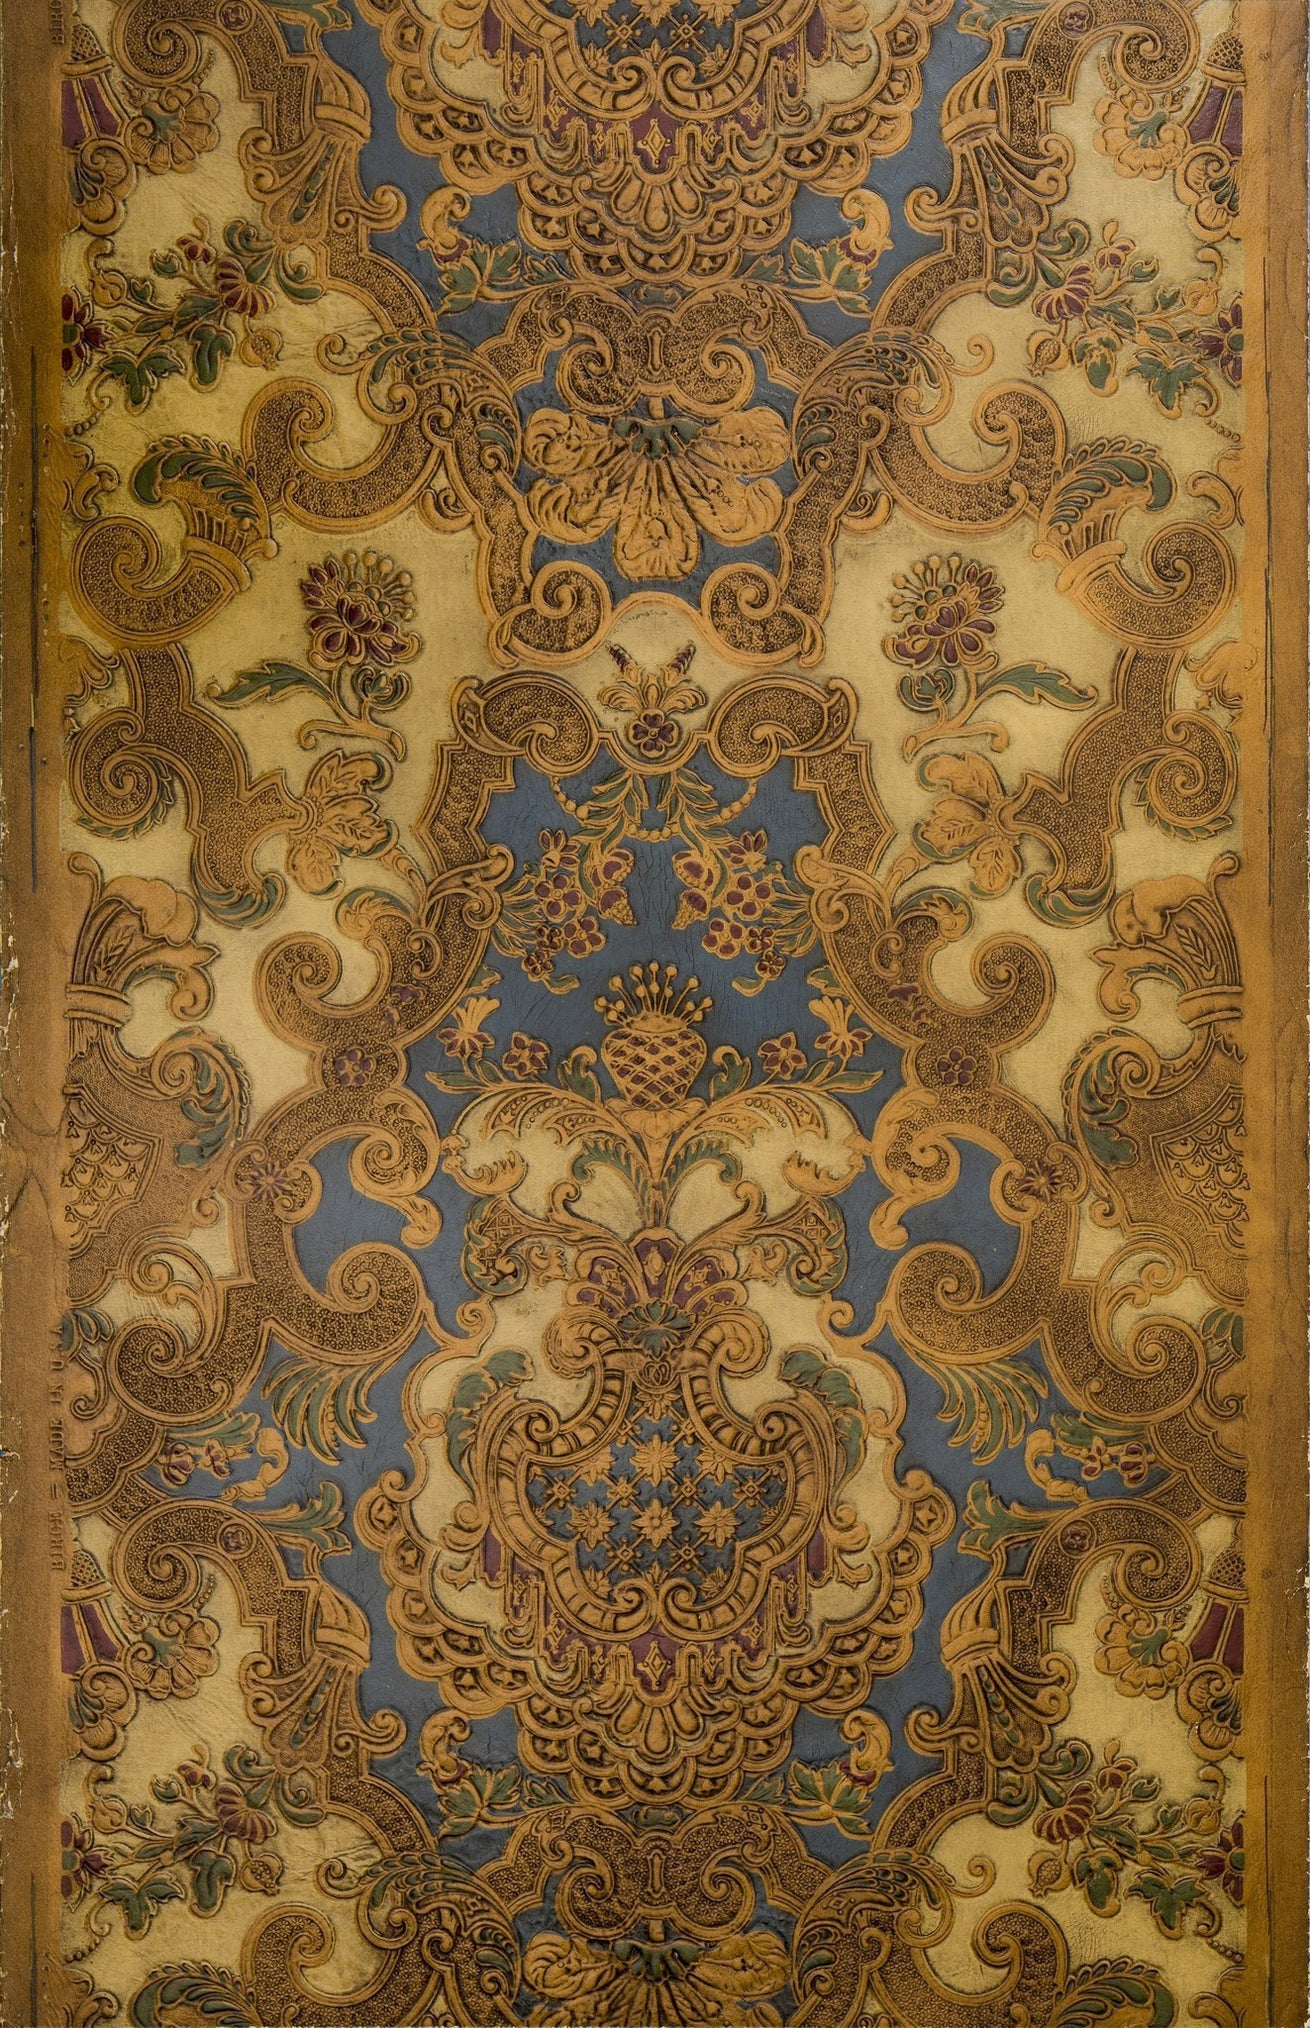 Intricate Rococo Tooled Leather - Antique Wallpaper Remnant